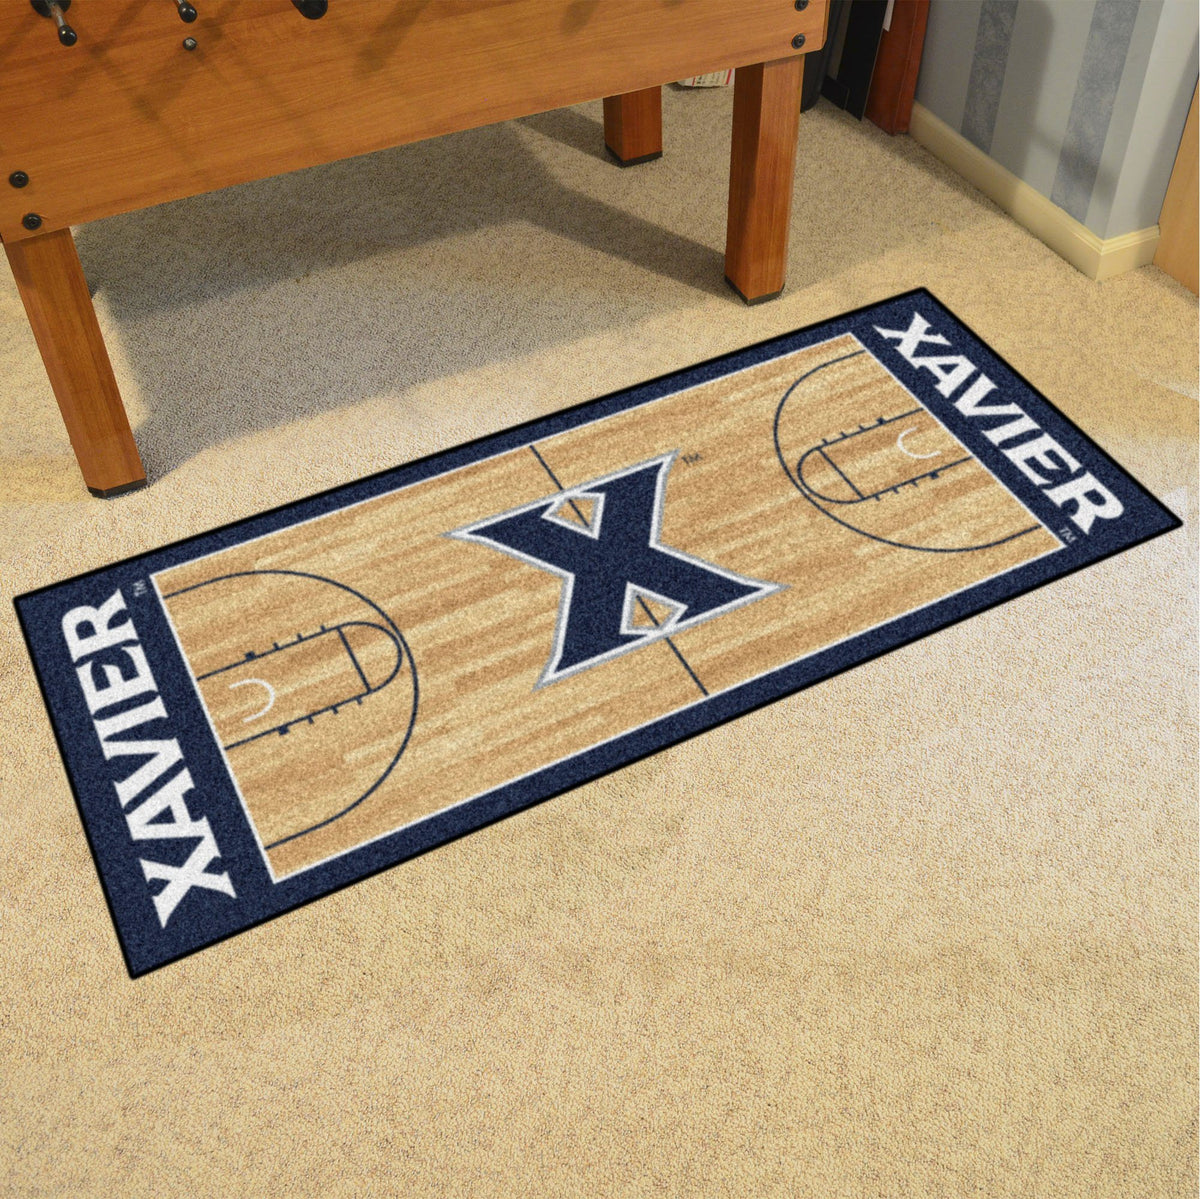 Collegiate - NCAA Basketball Runner Collegiate Mats, Rectangular Mats, NCAA Basketball Runner, Collegiate, Home Fan Mats Xavier